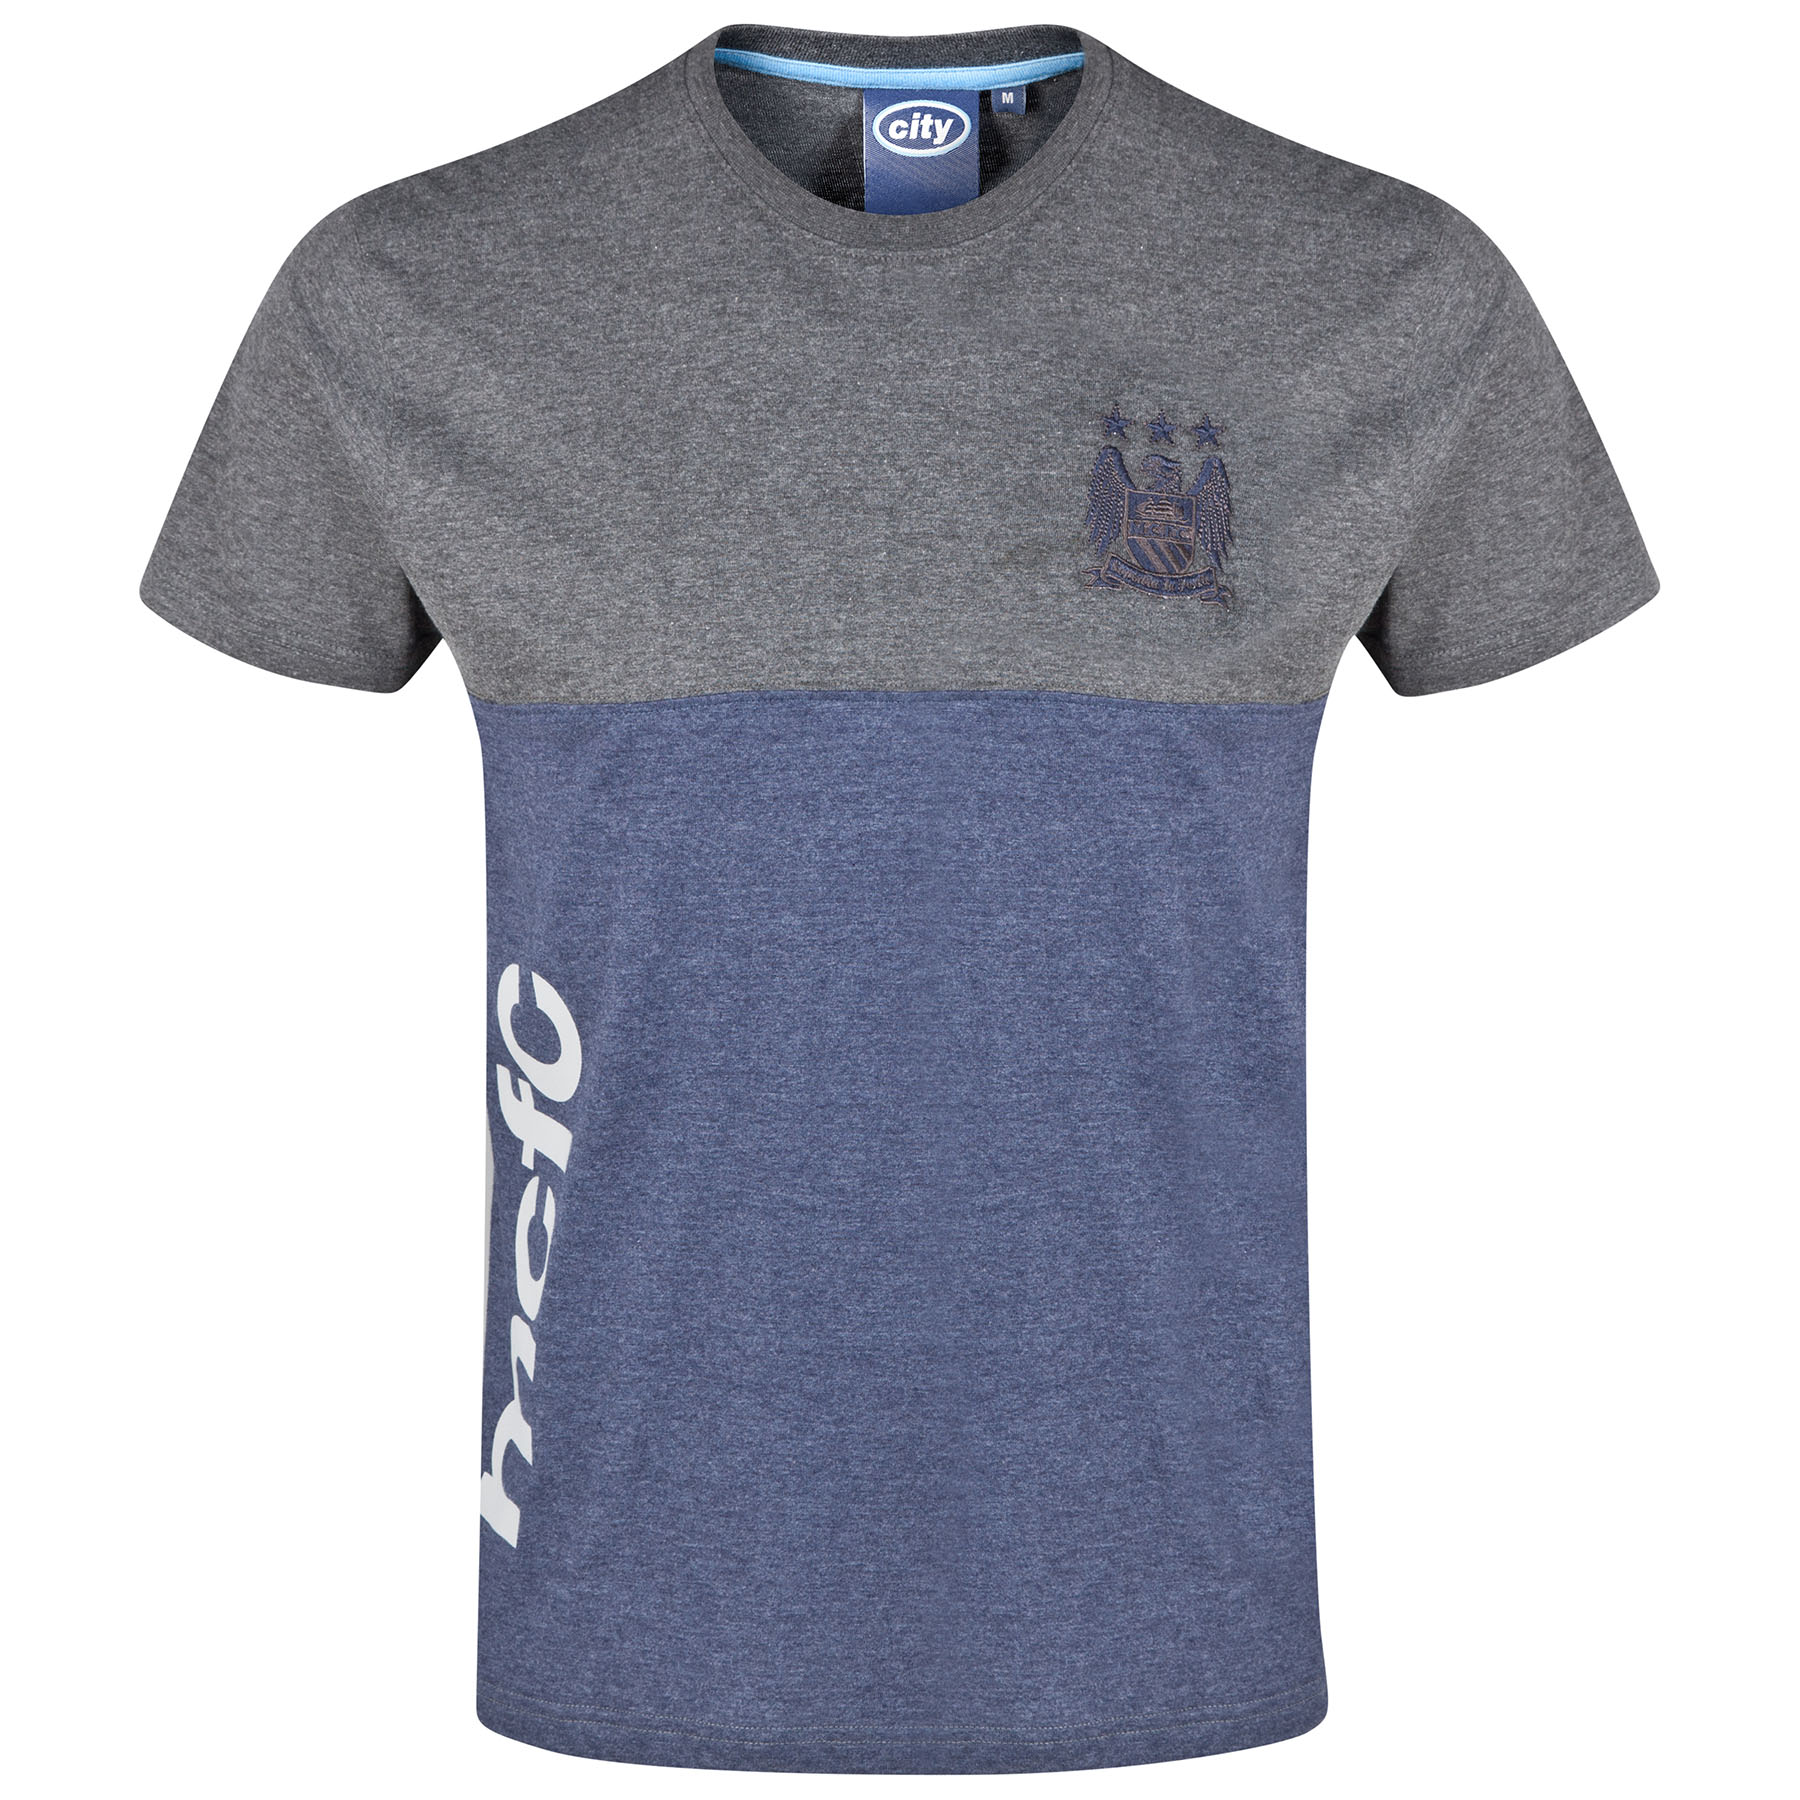 Manchester City Essential T-Shirt - Vintage Marl/Heather Navy - Mens